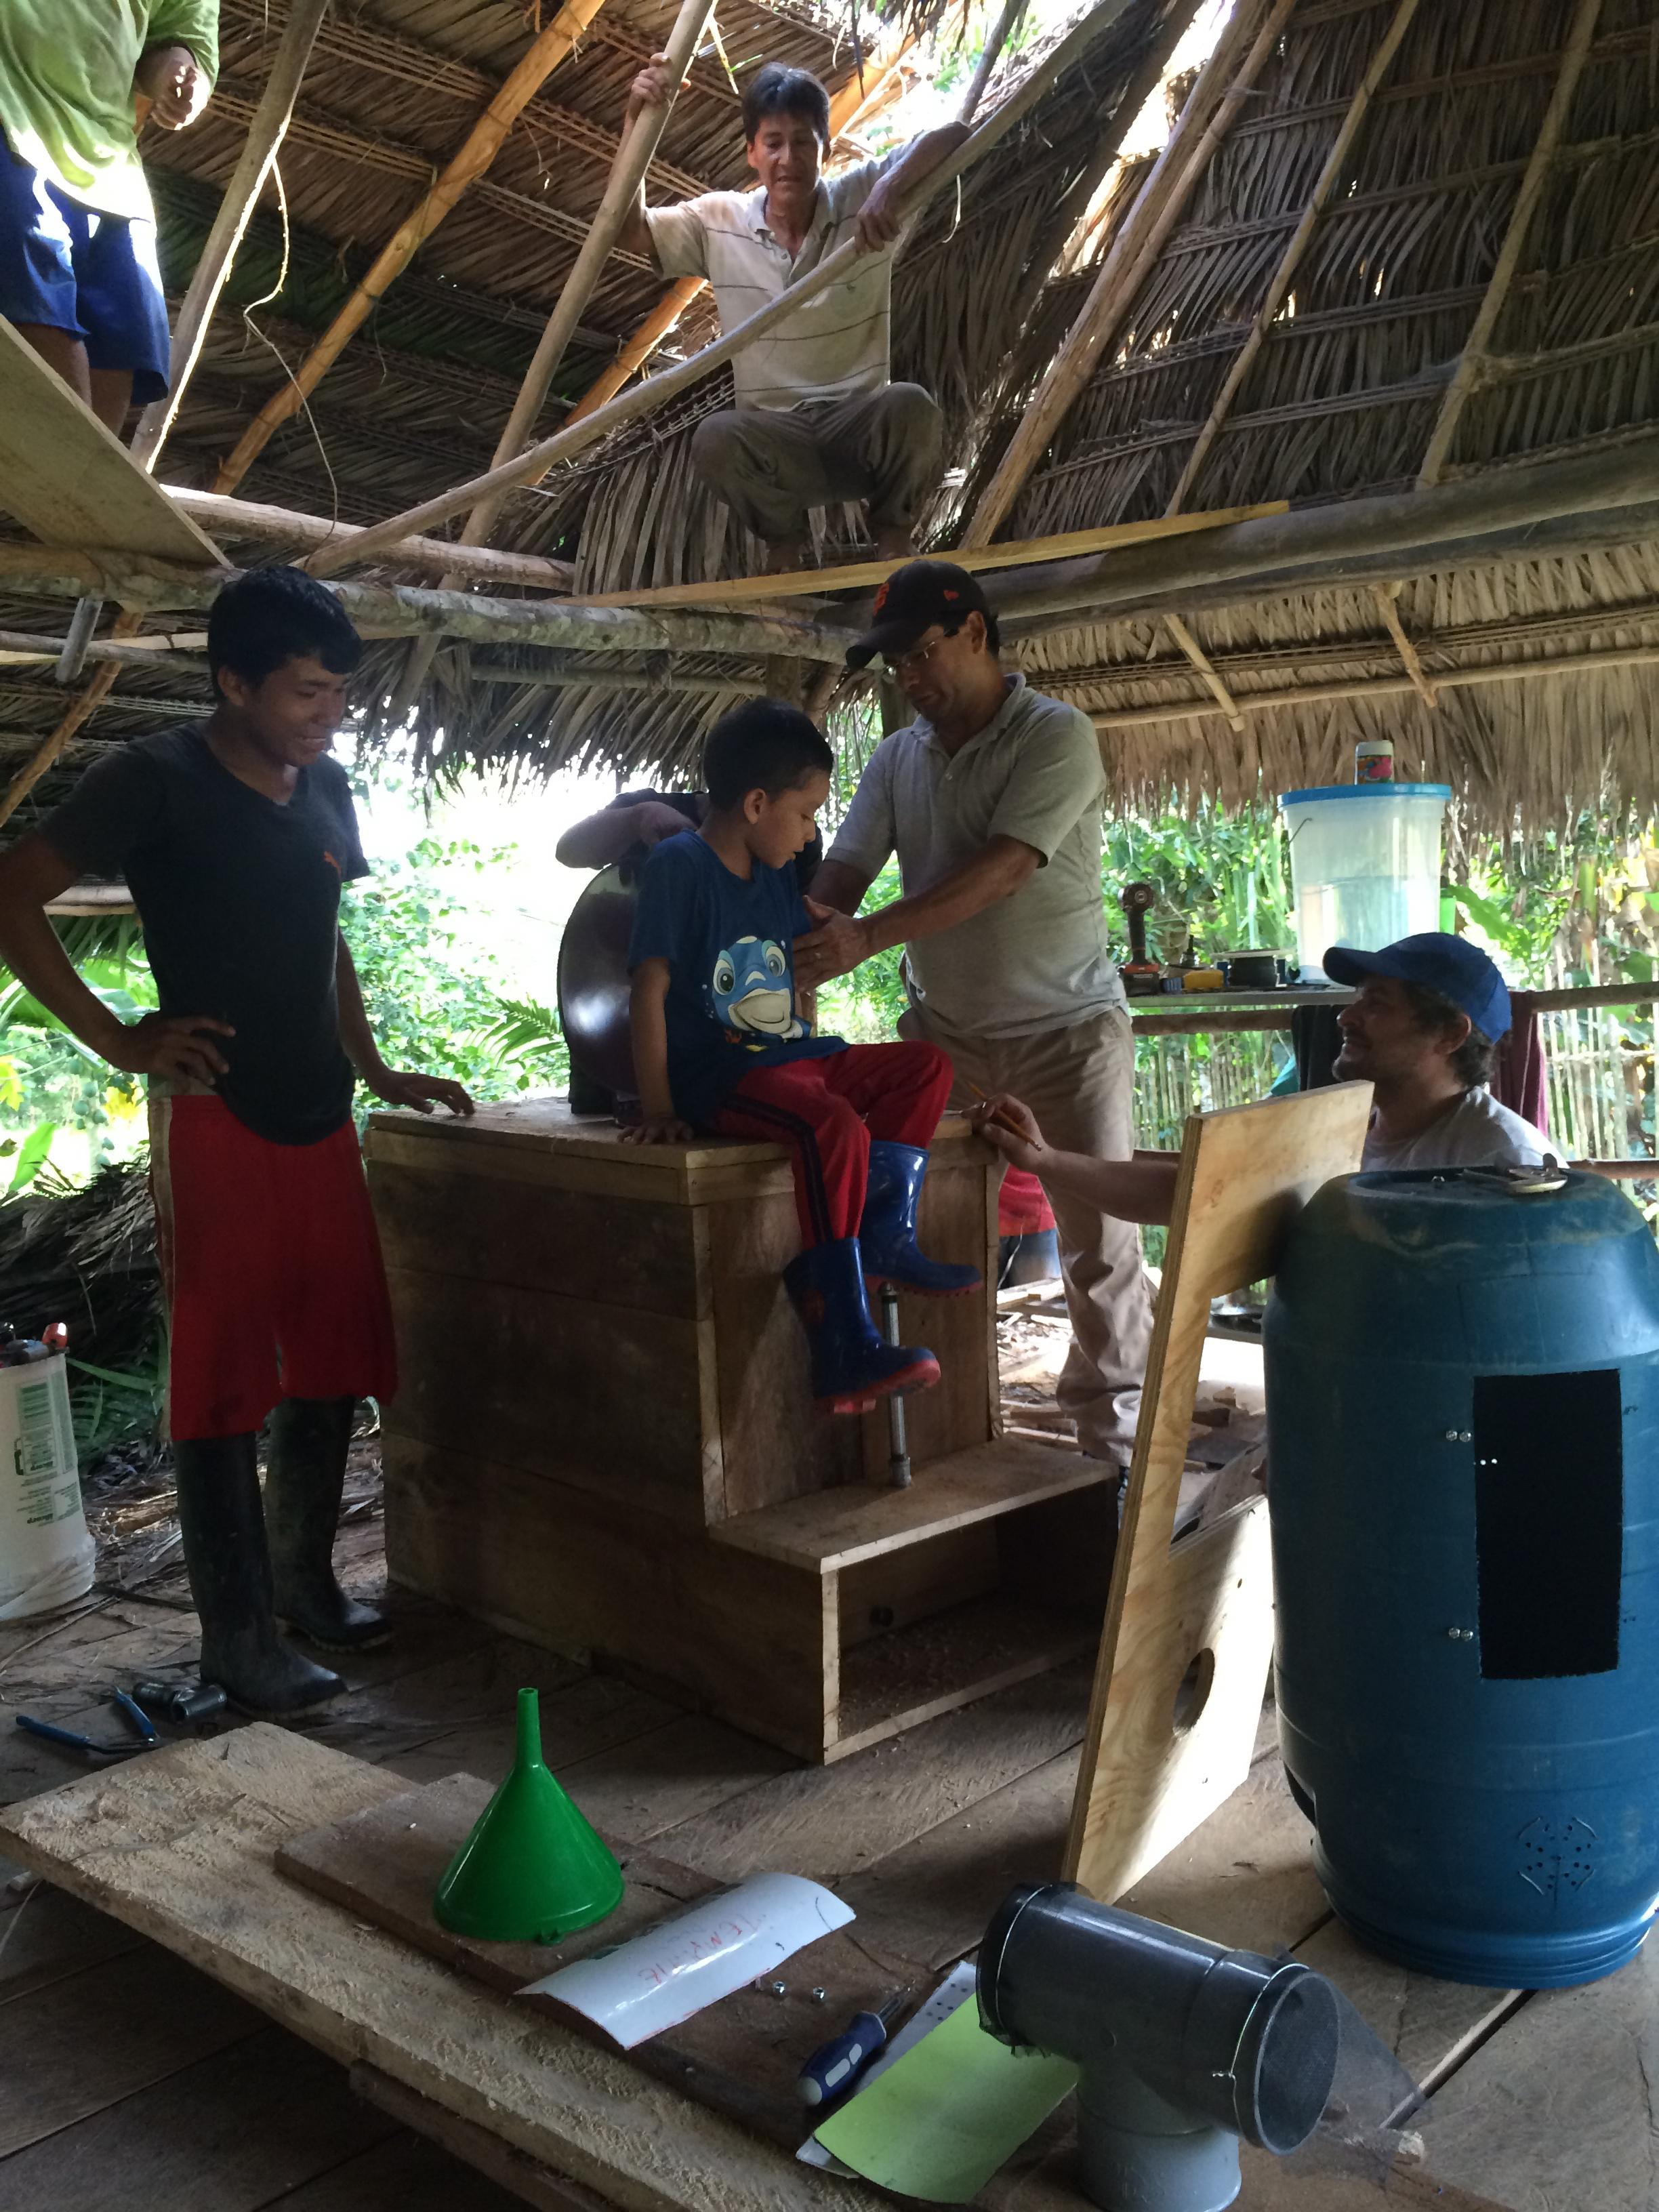 Jalder, Peru - In 2016 TFP, along with local craftsmen and our NGO partner Amazon Promise, installed of 2 high capacity composting toilets at a pre-school.